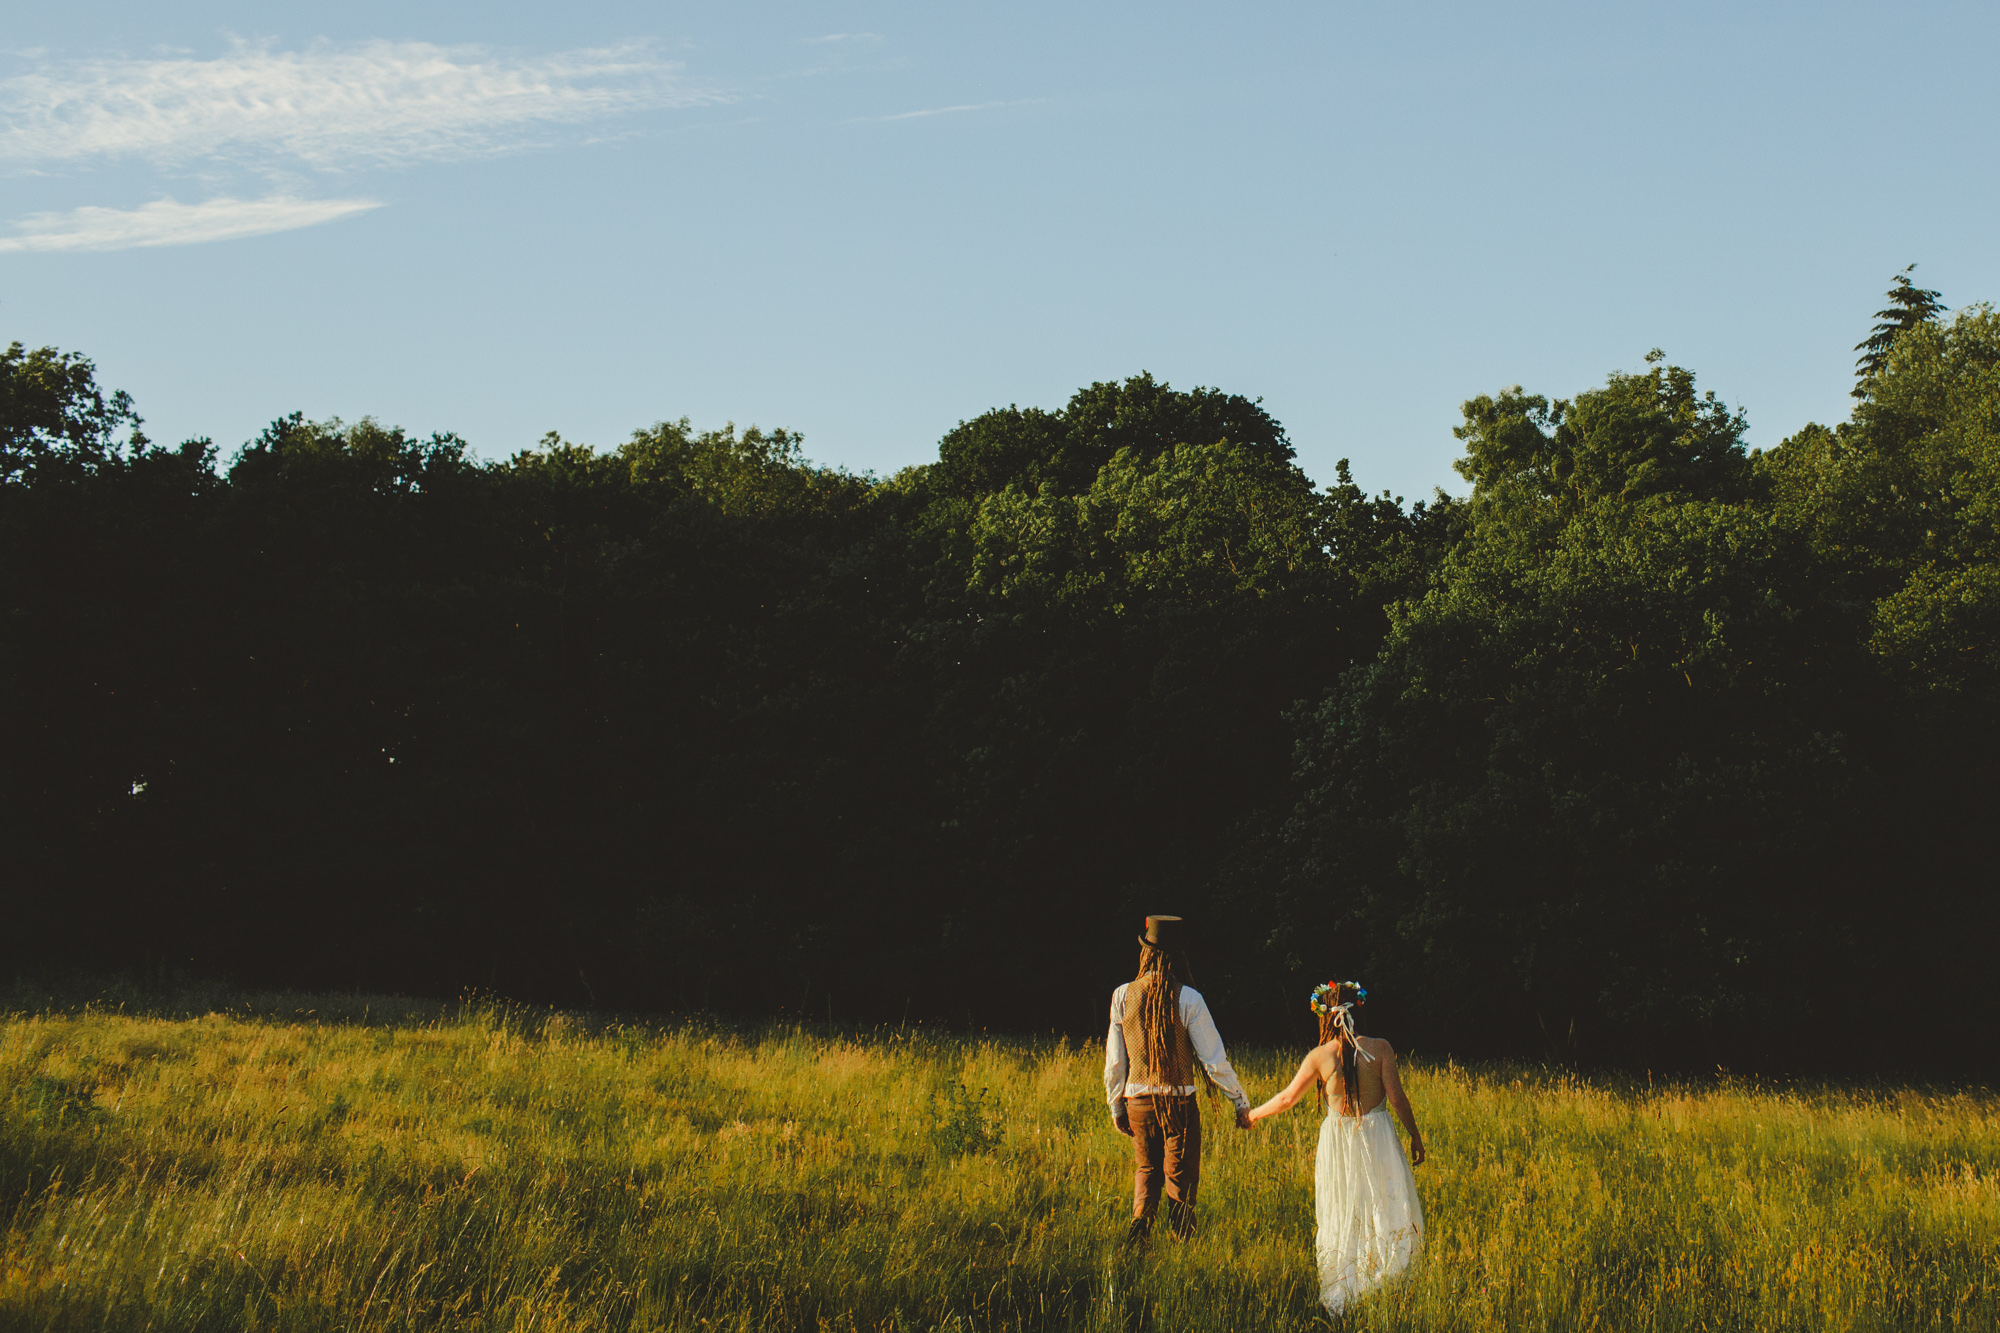 alternative-wedding-photographer-uk-camera-hannah-22.jpg